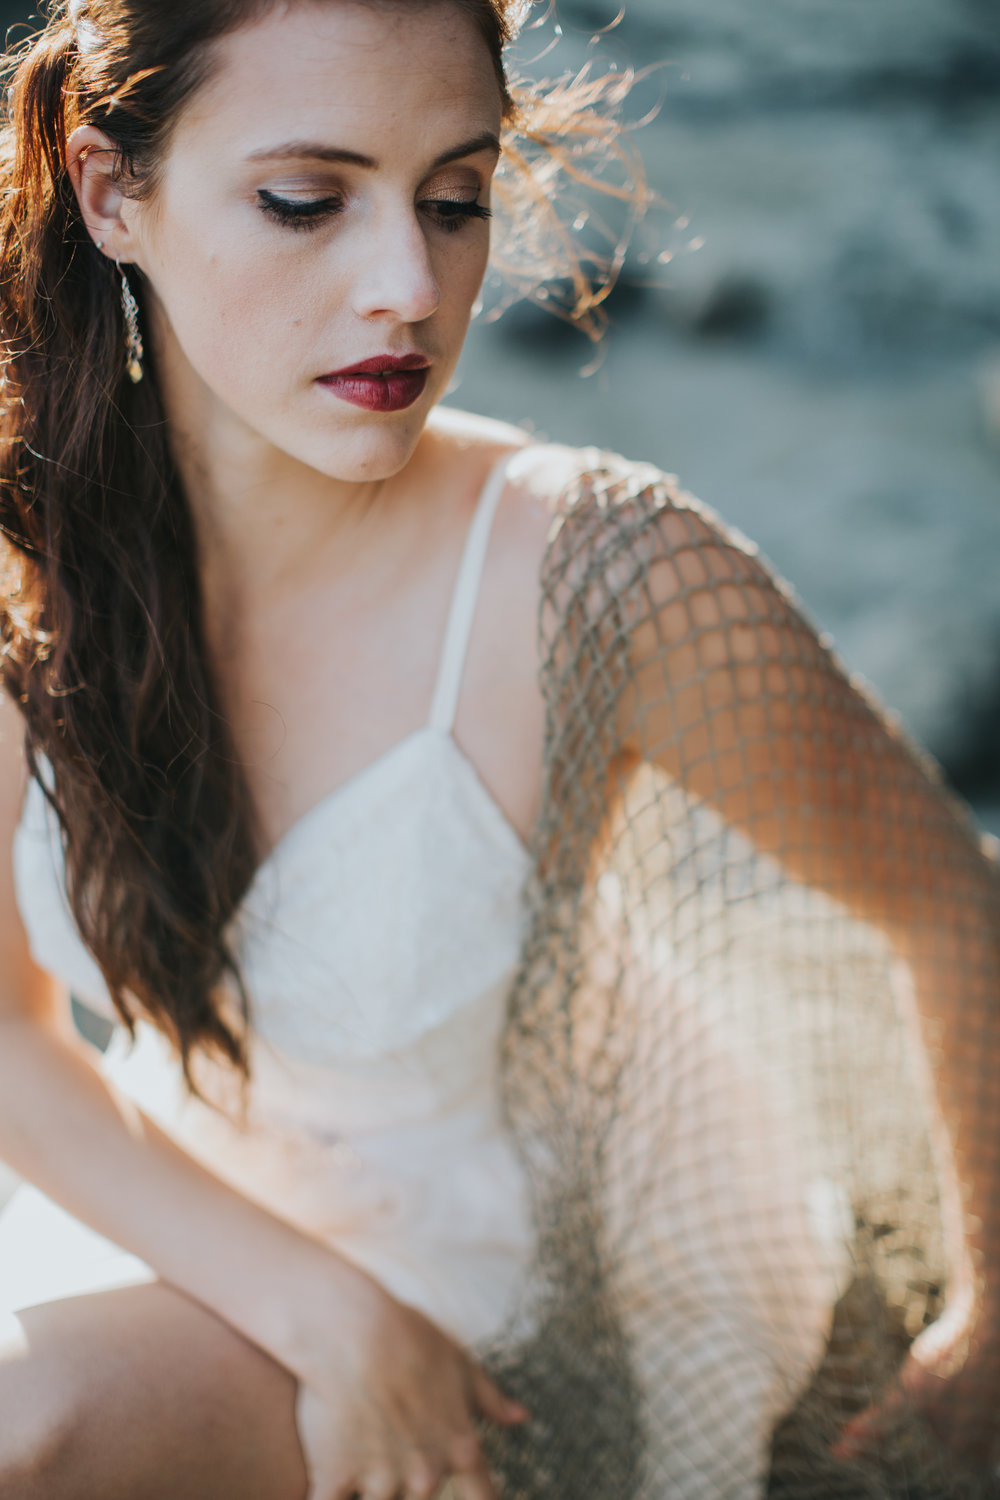 Port-Angeles-Salt-Creek-beach-wedding-bride-PNW-olympic-peninsula-photographer-Kayla-Dawn-Photography-outdoors-golden-hour-dancer-dress (29).jpg